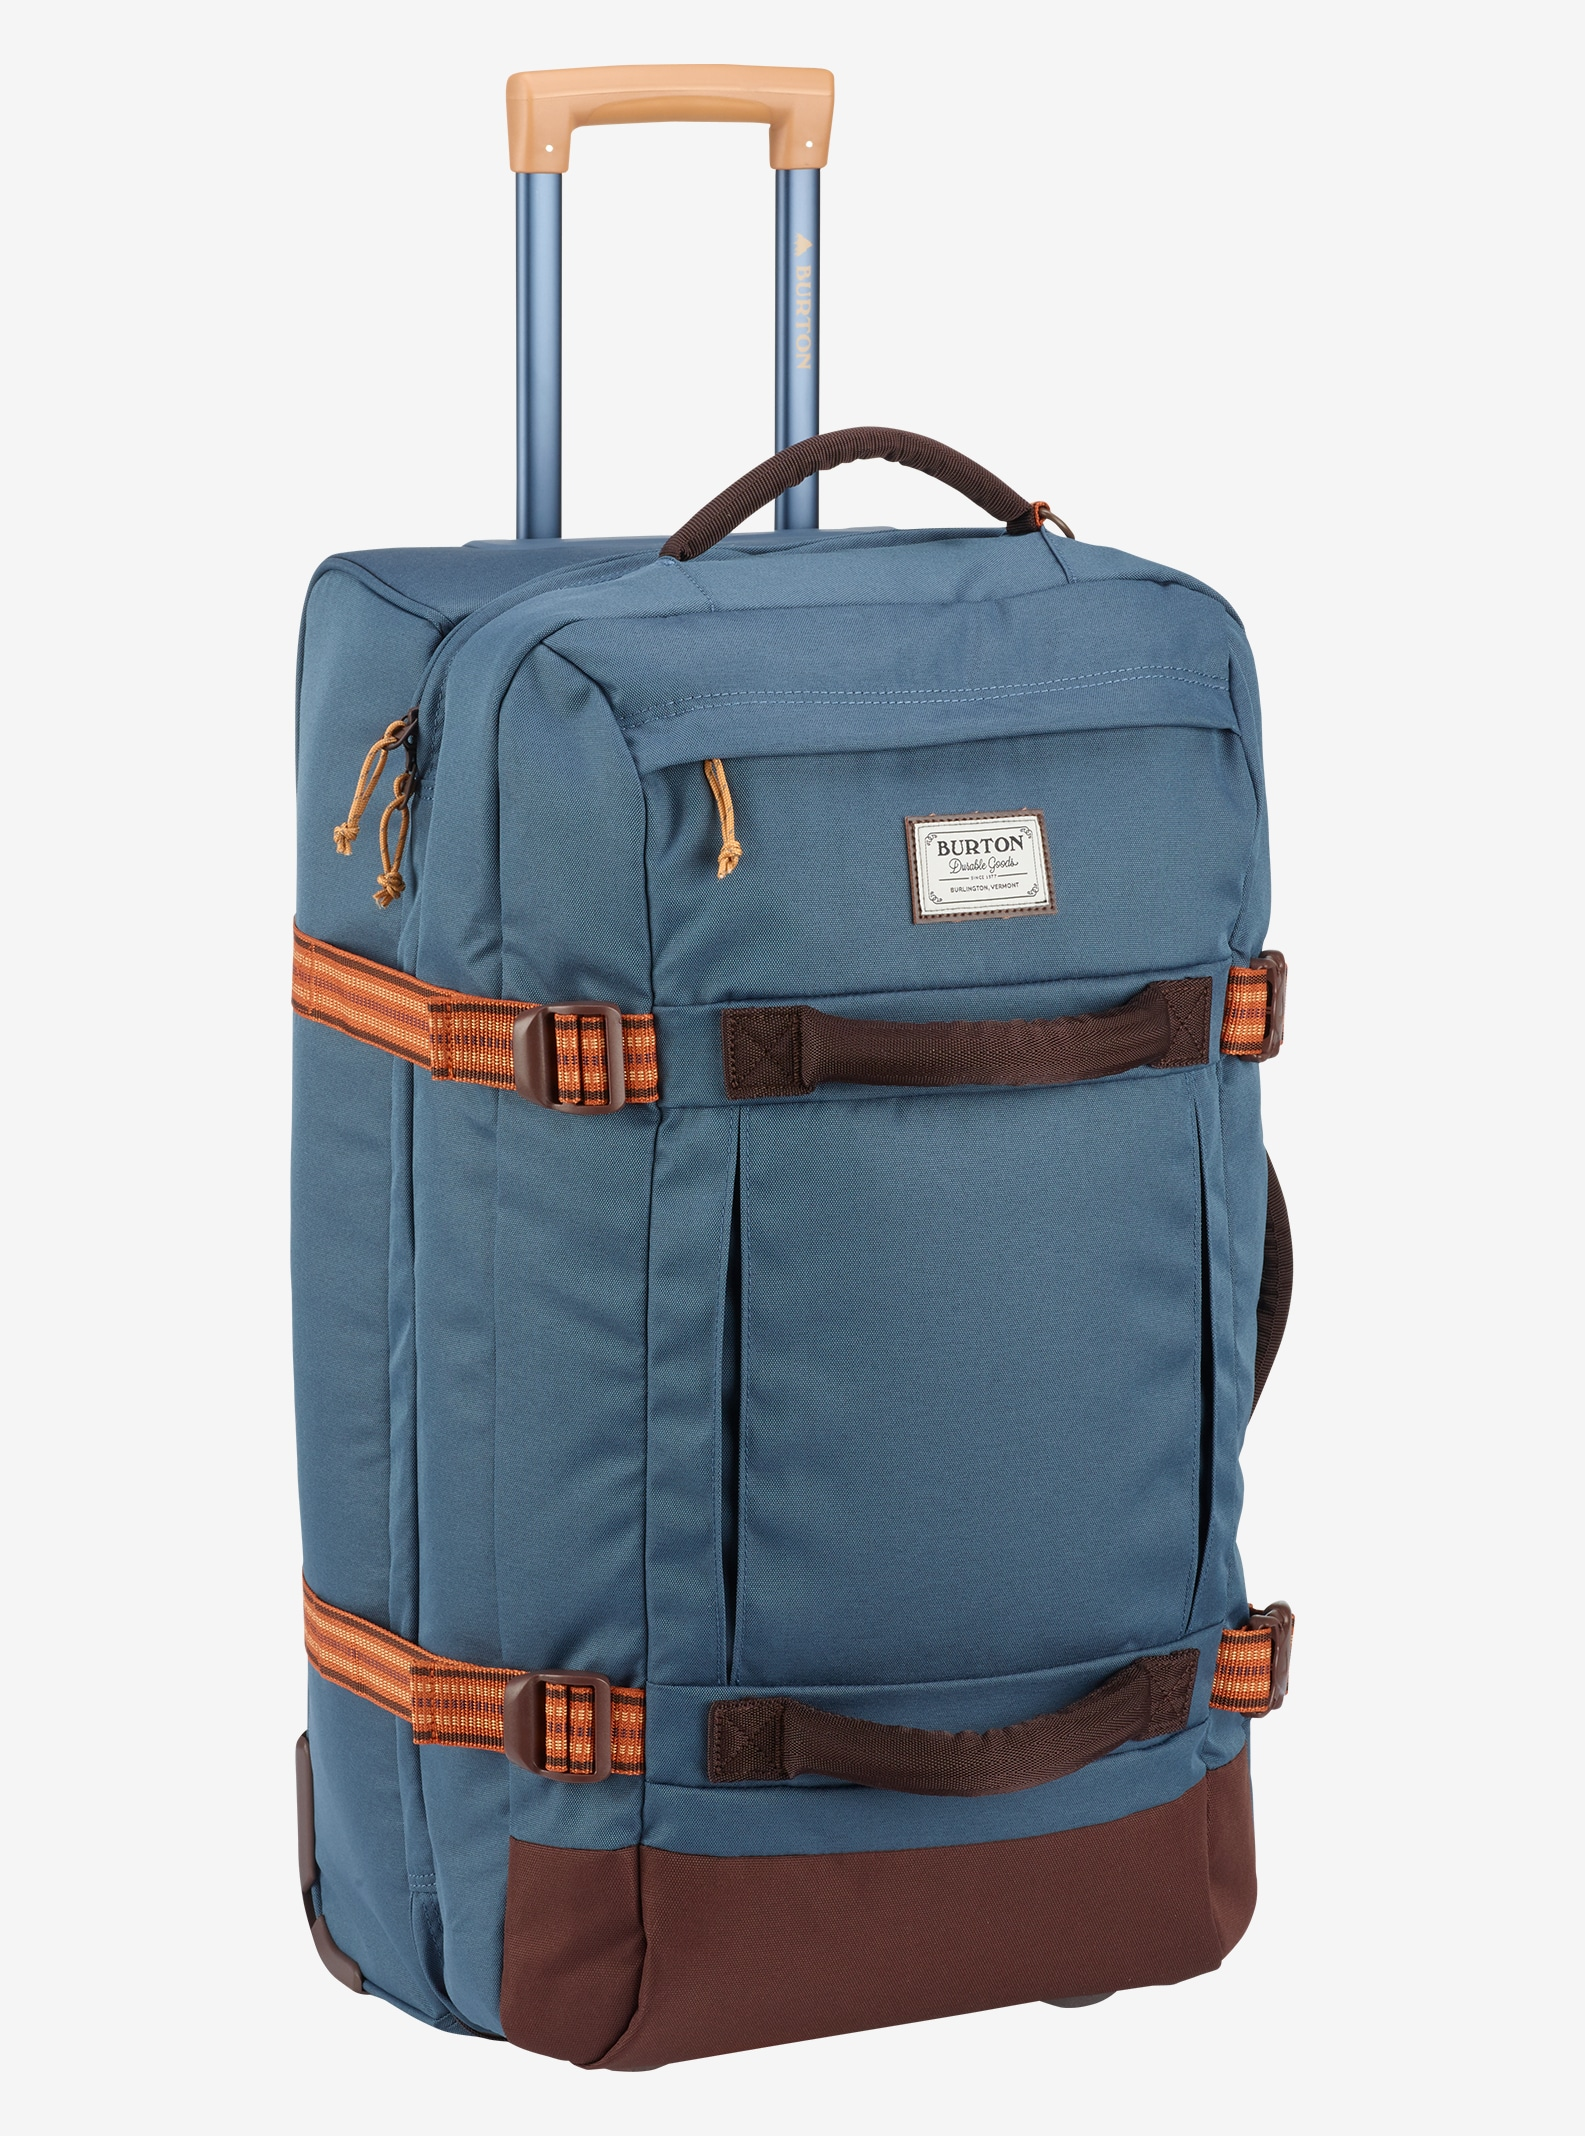 Burton Convoy Roller Travel Bag shown in Washed Blue